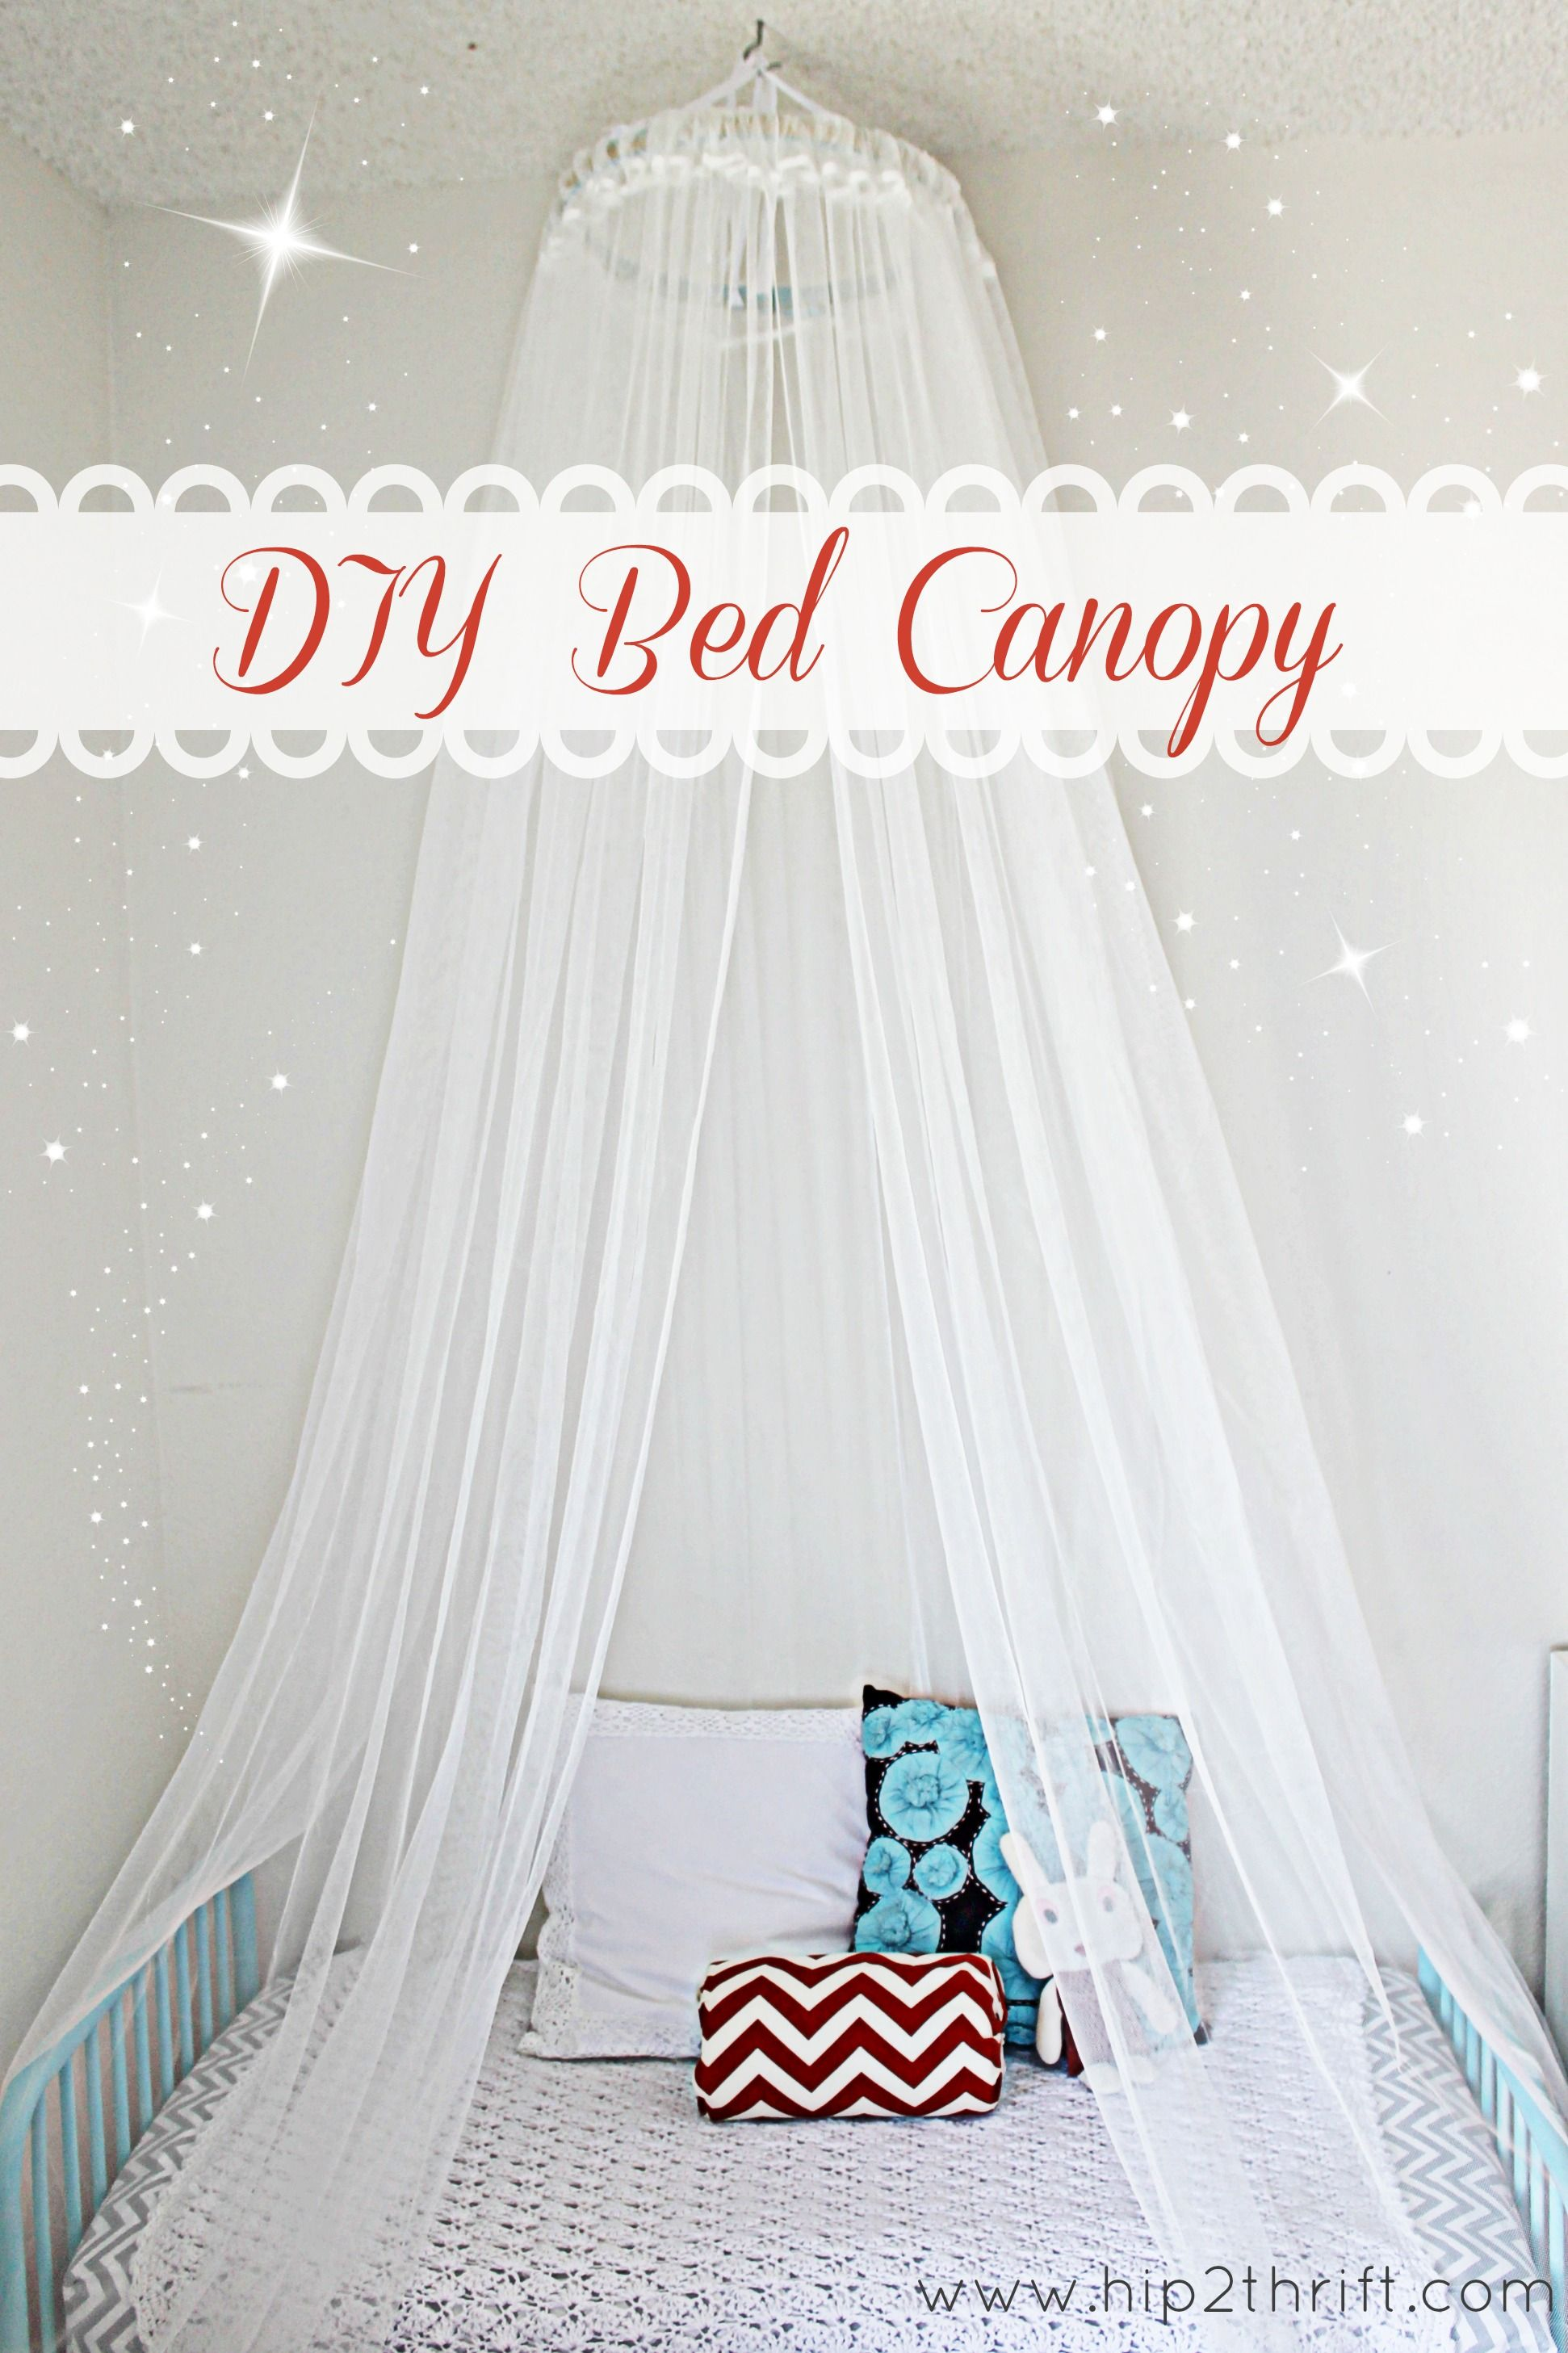 Diy bed canopy dorm - 23 Amazing Canopies With String Lights Ideas White Ceiling Bed Canopies And Sheer Fabrics